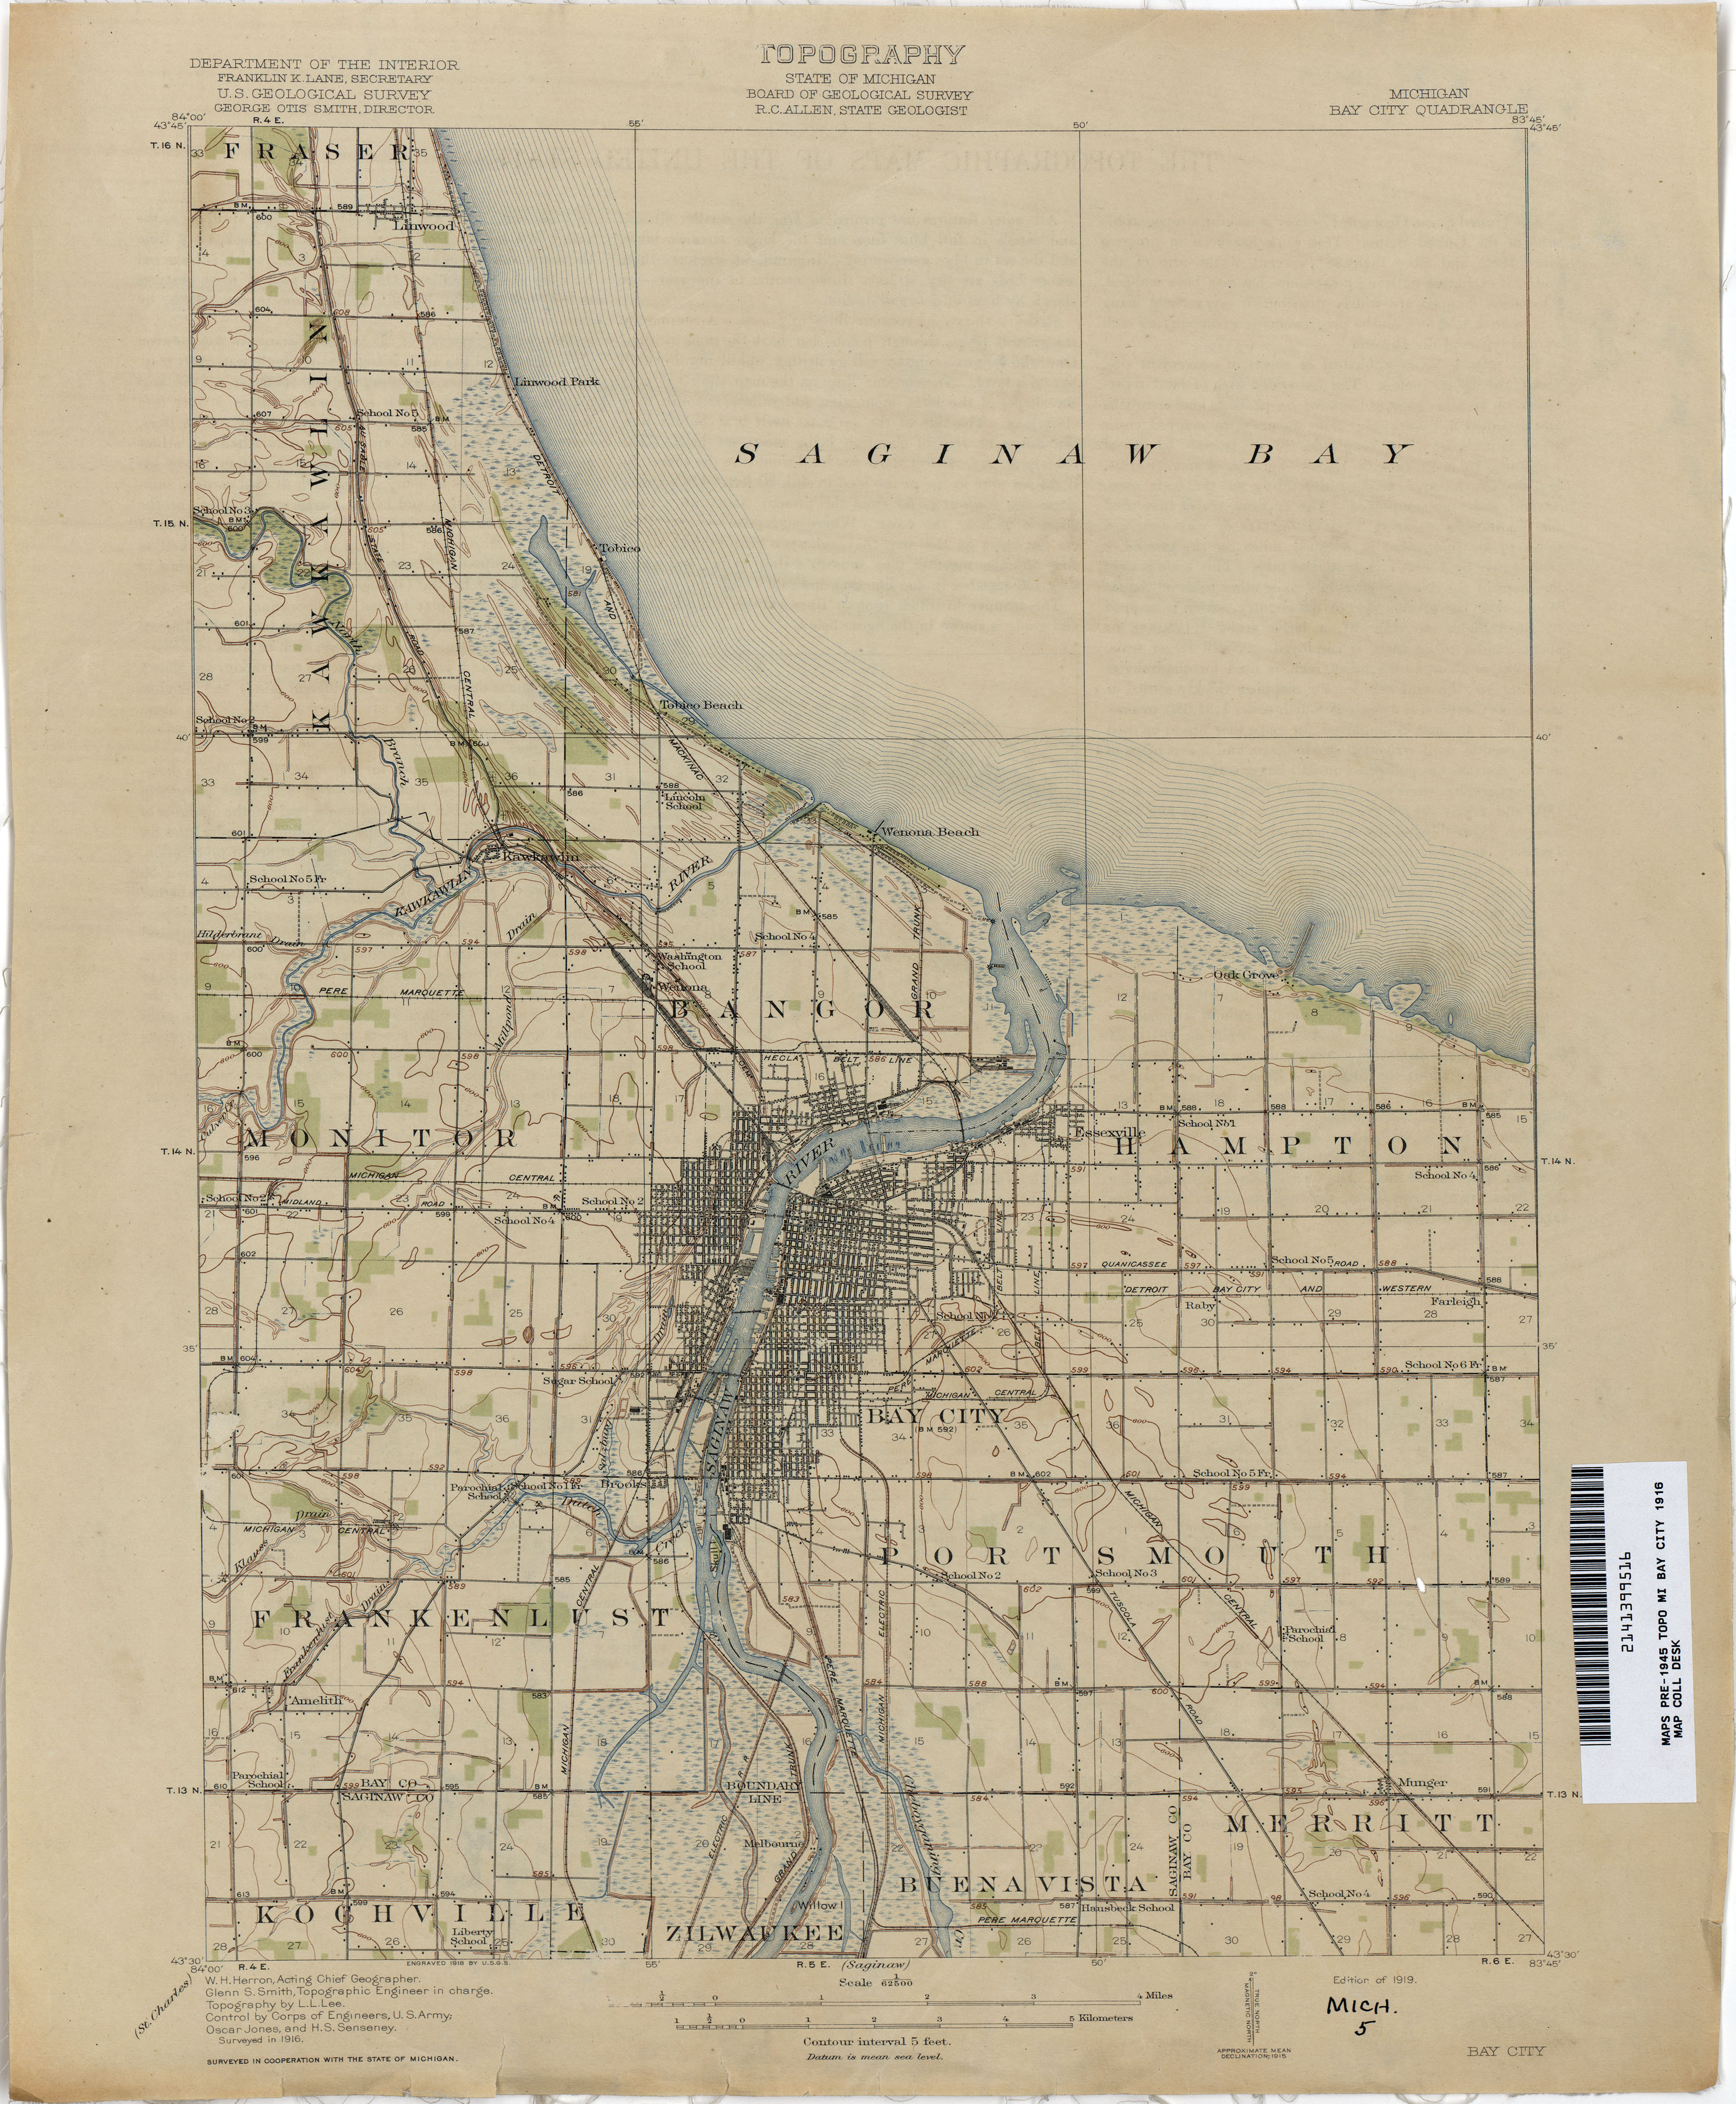 Historical Topographic Maps Perry Castaneda Map Collection Ut